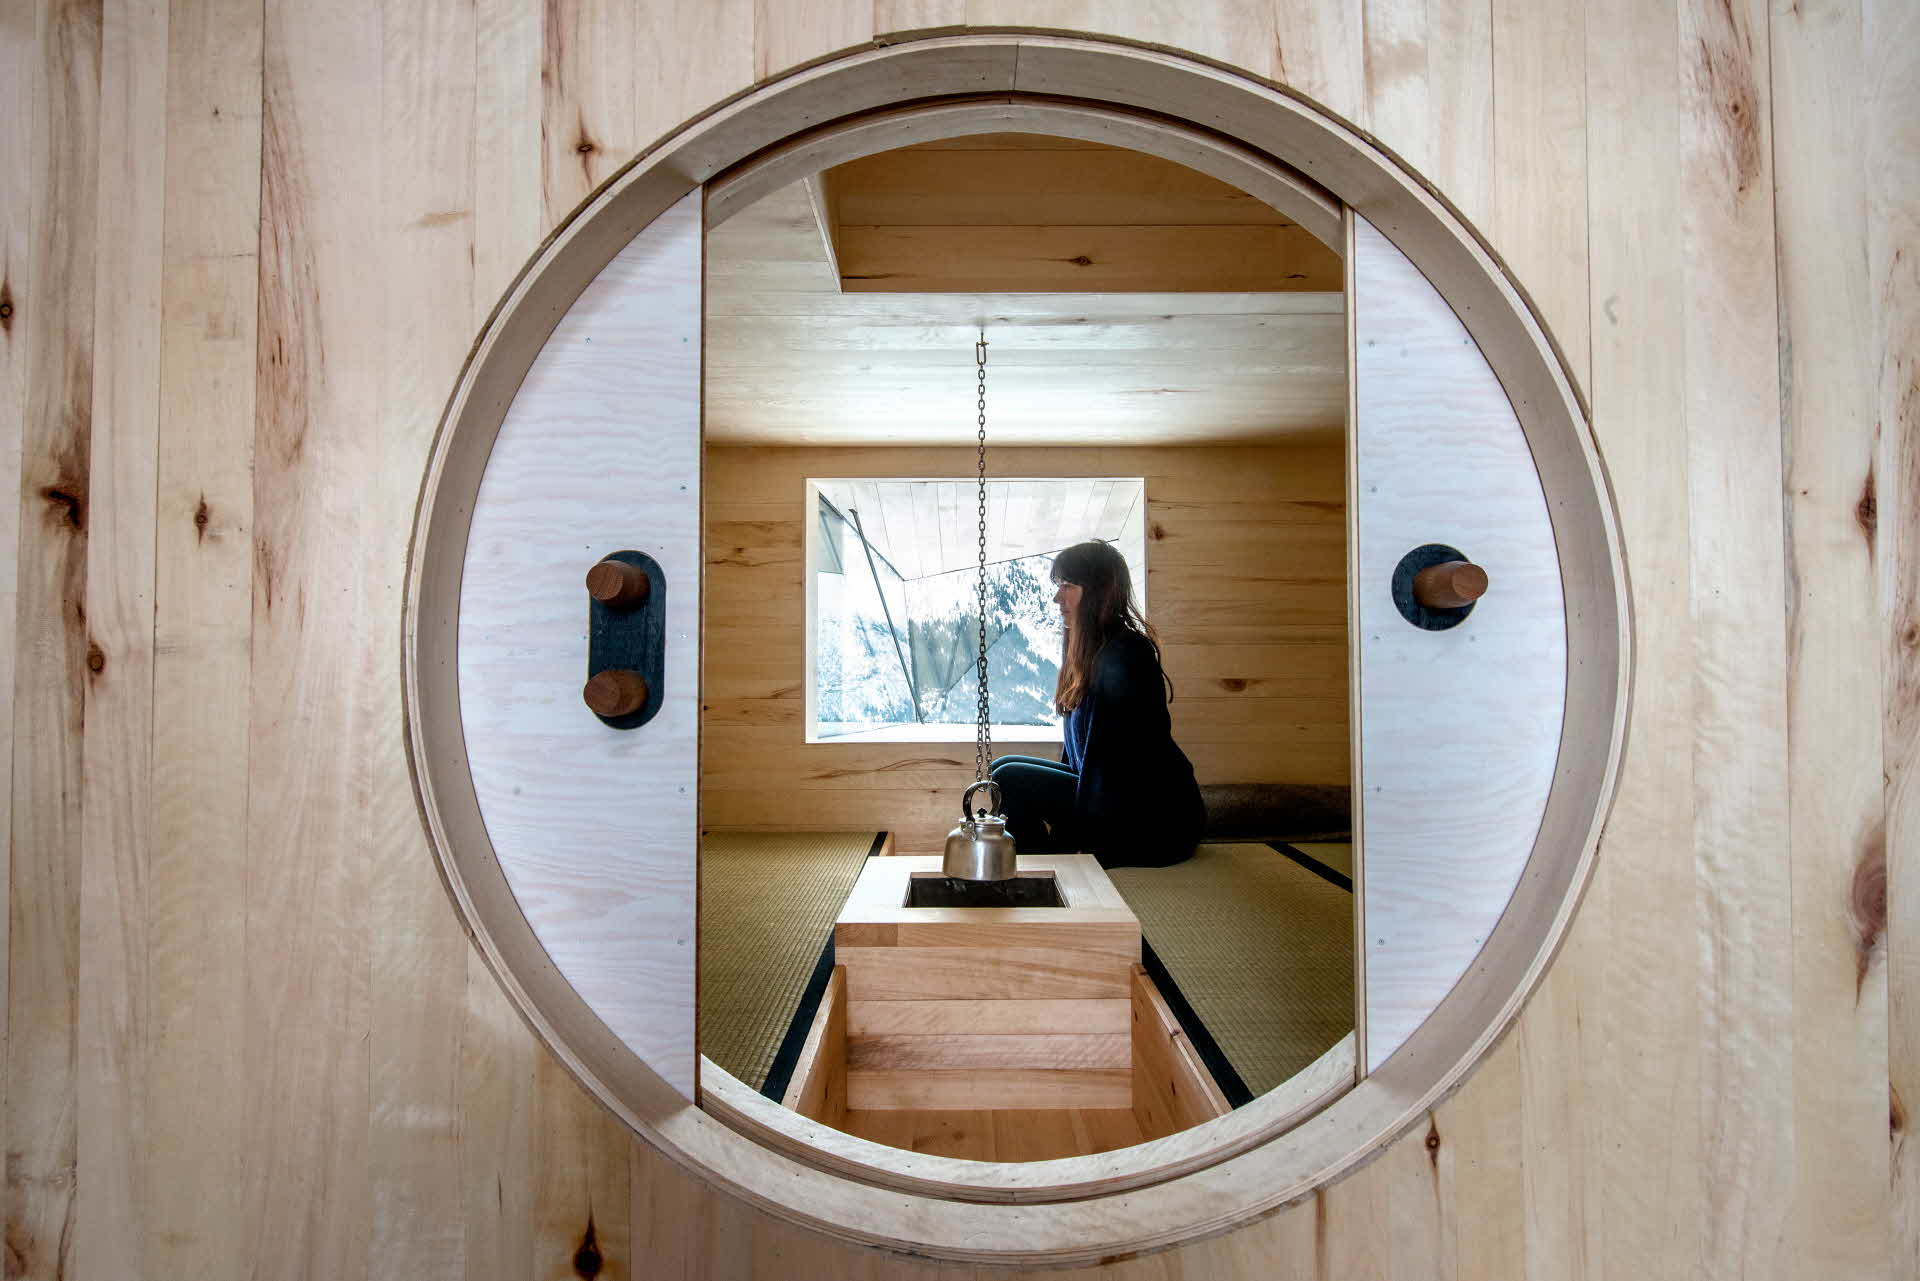 A woman looking through a round window while sitting on a bed